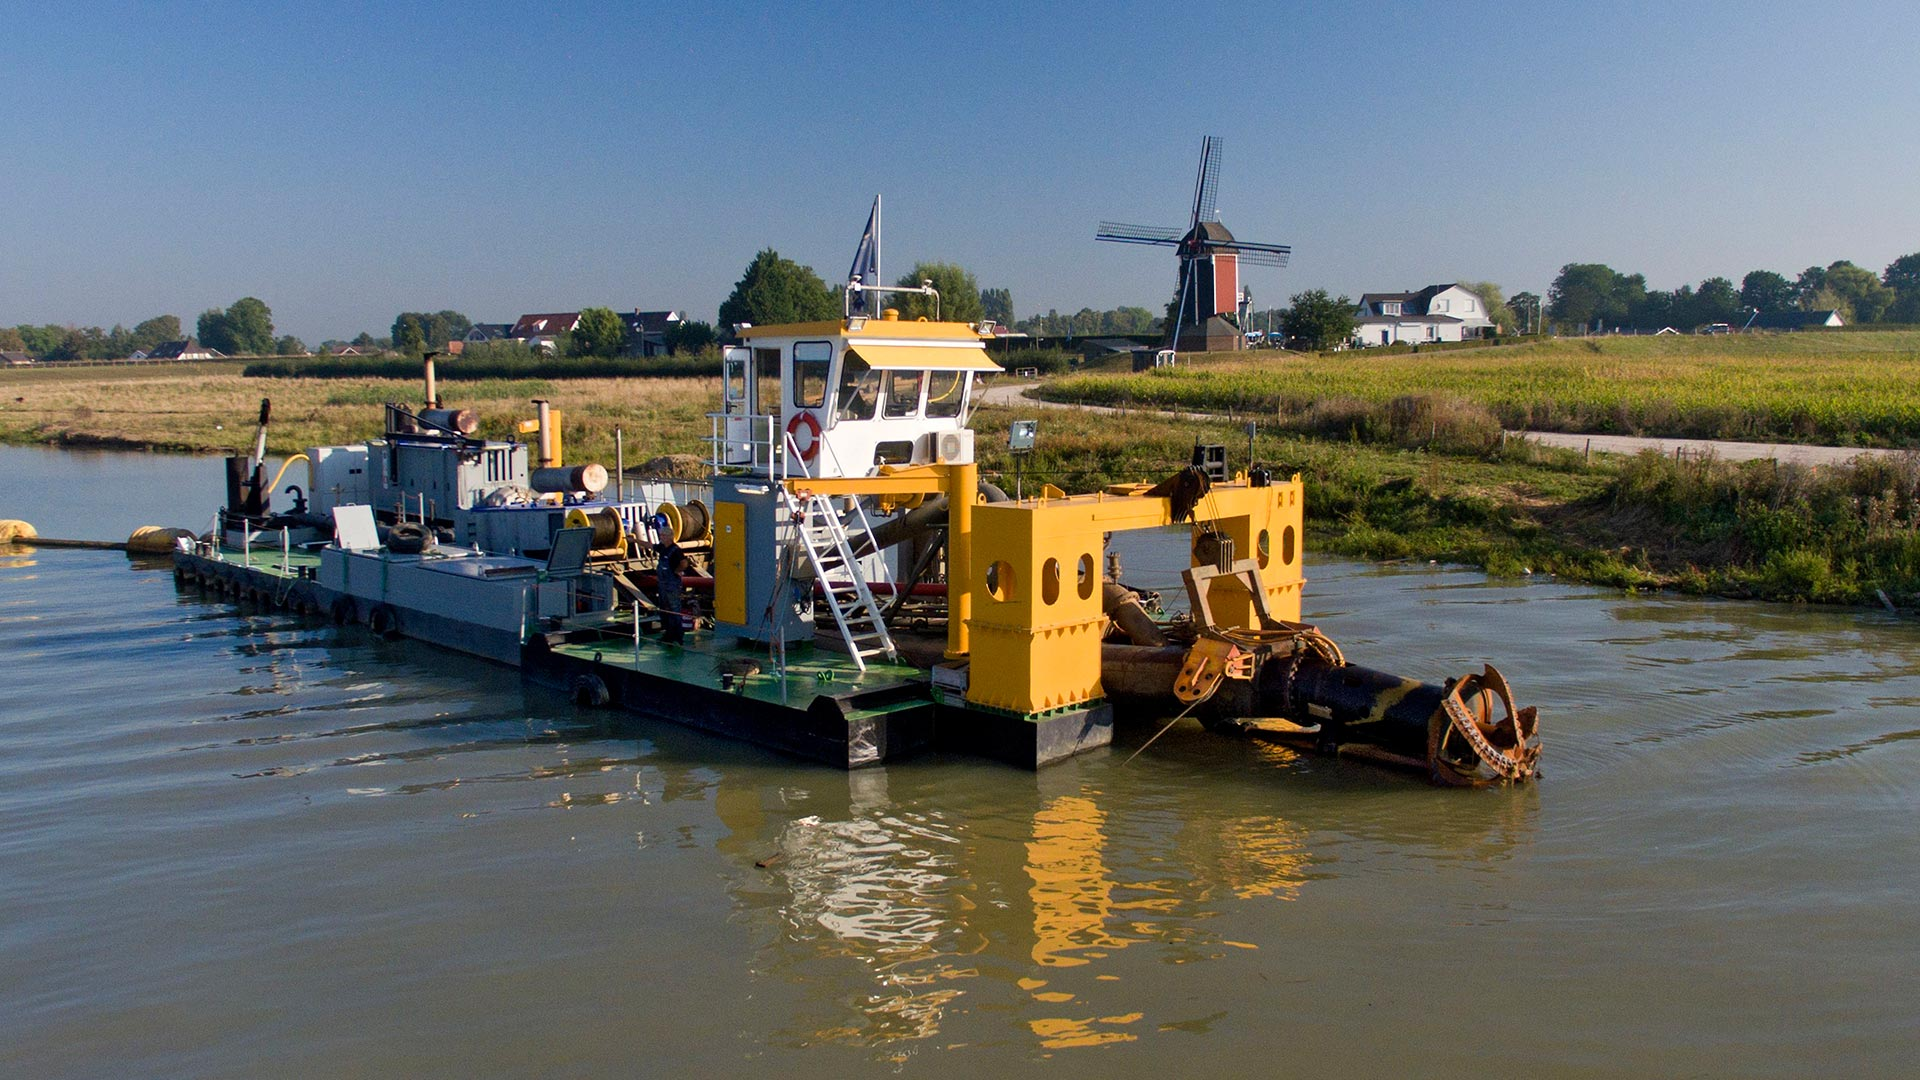 Royal Smals was established in 1885 and is a worldwide dredging company now.